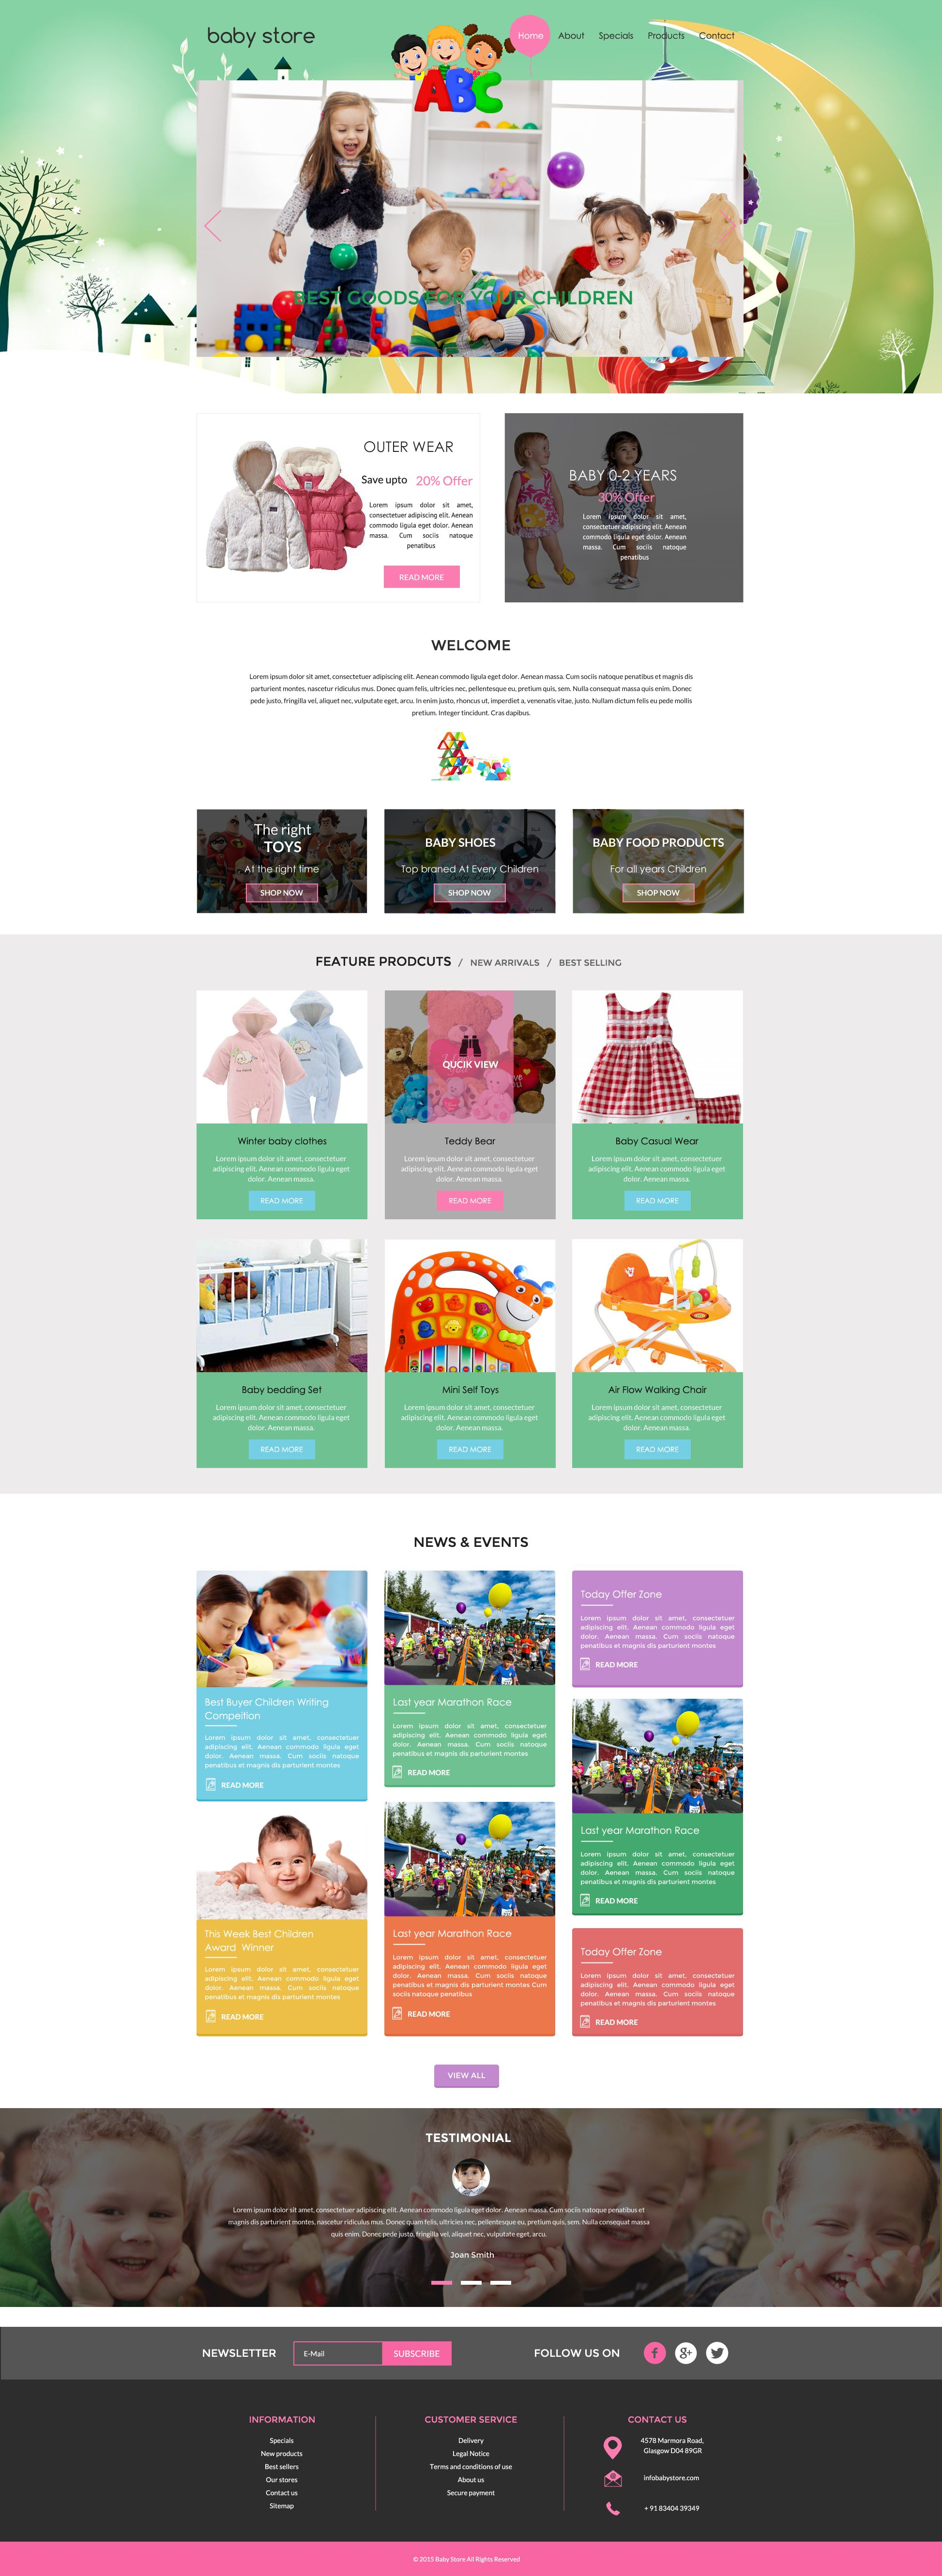 Sells Baby Store Template One Of The Best Website Builder In - Design your own website template